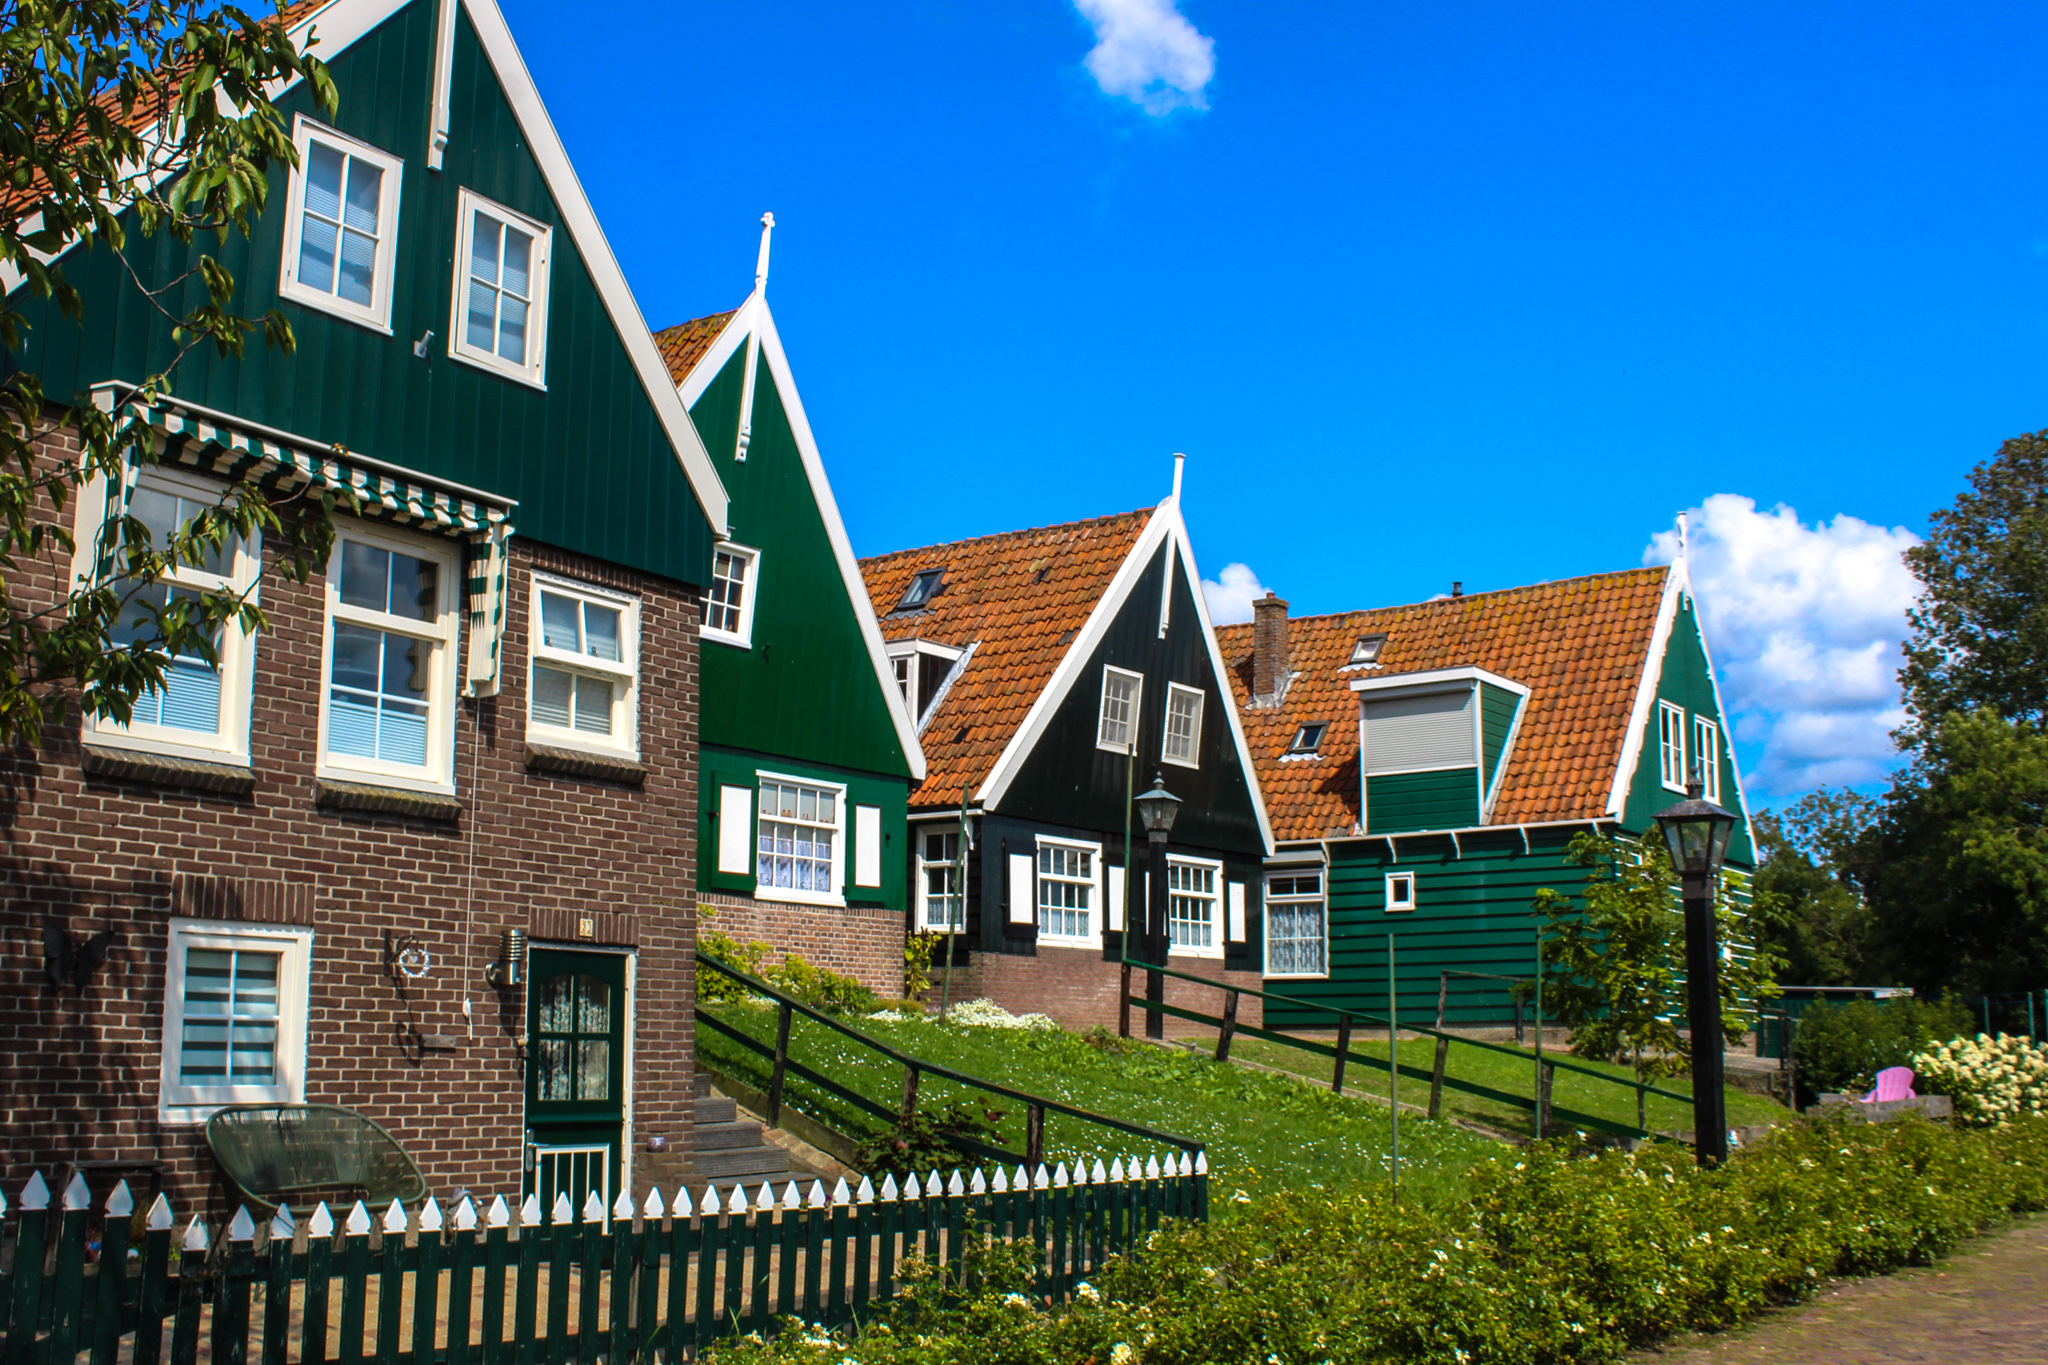 marken is why amsterdam is worth visiting